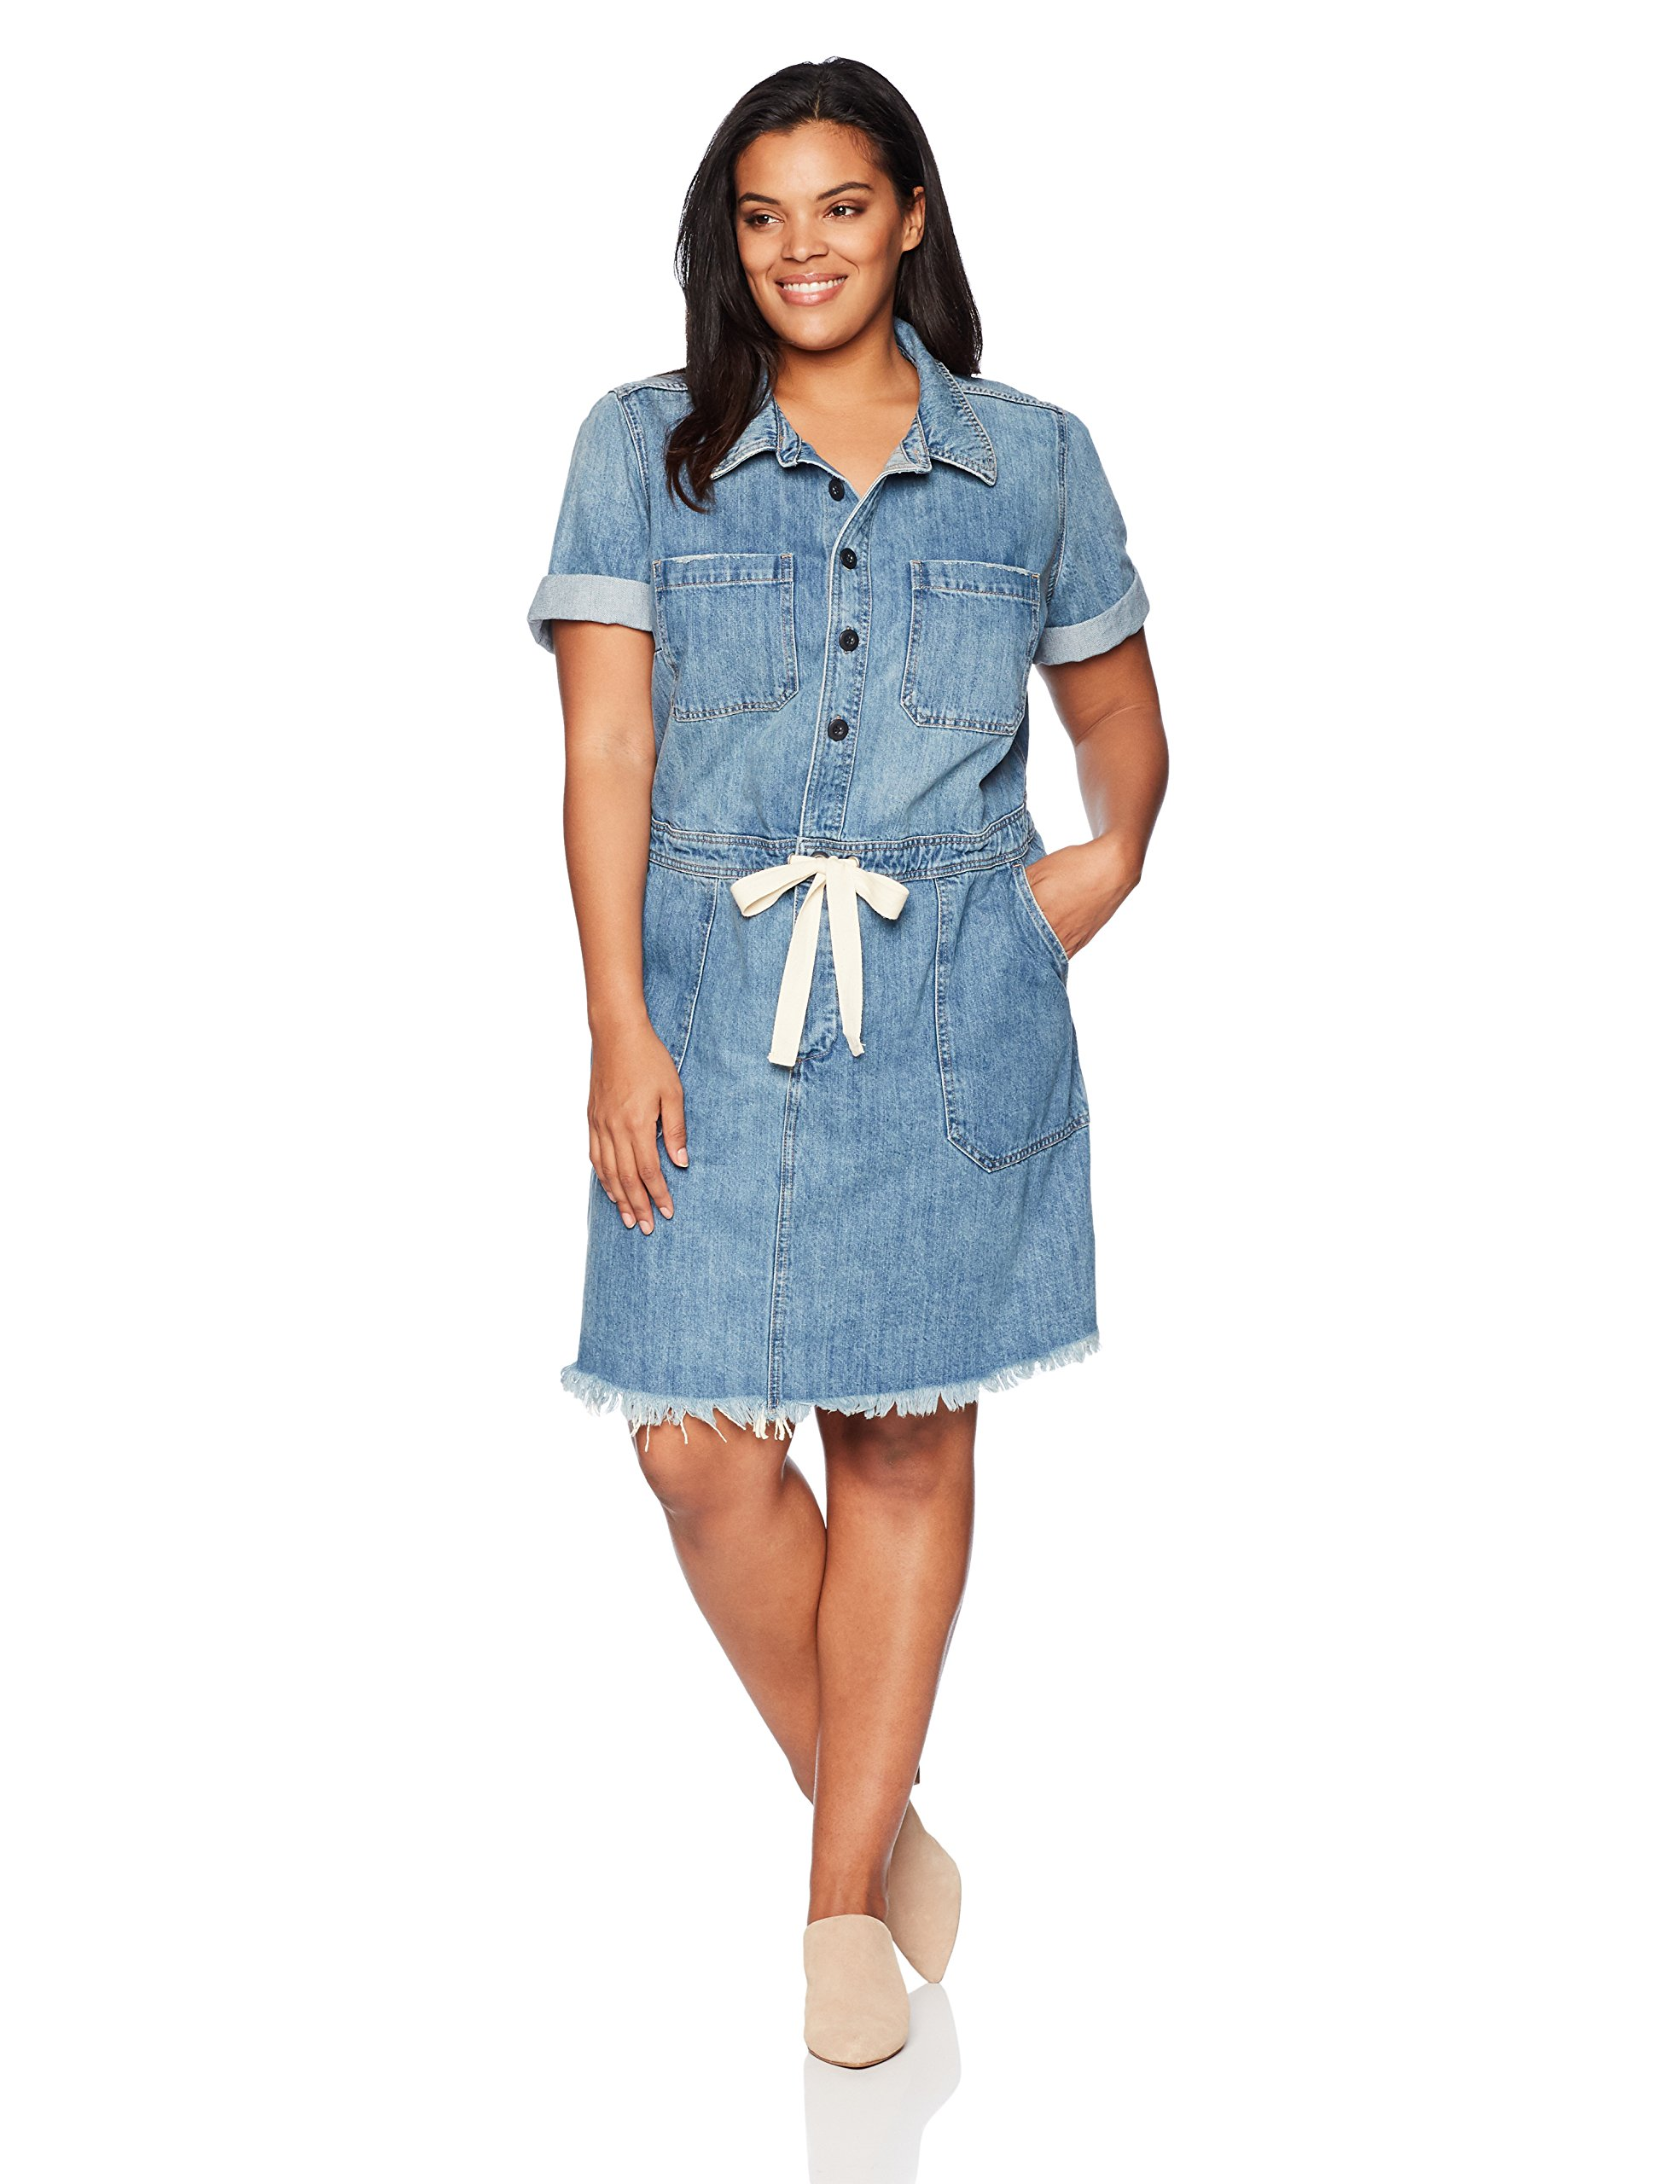 Lucky Brand Women's Plus Size Drawstring Dress, Seville, 2X by Lucky Brand (Image #1)